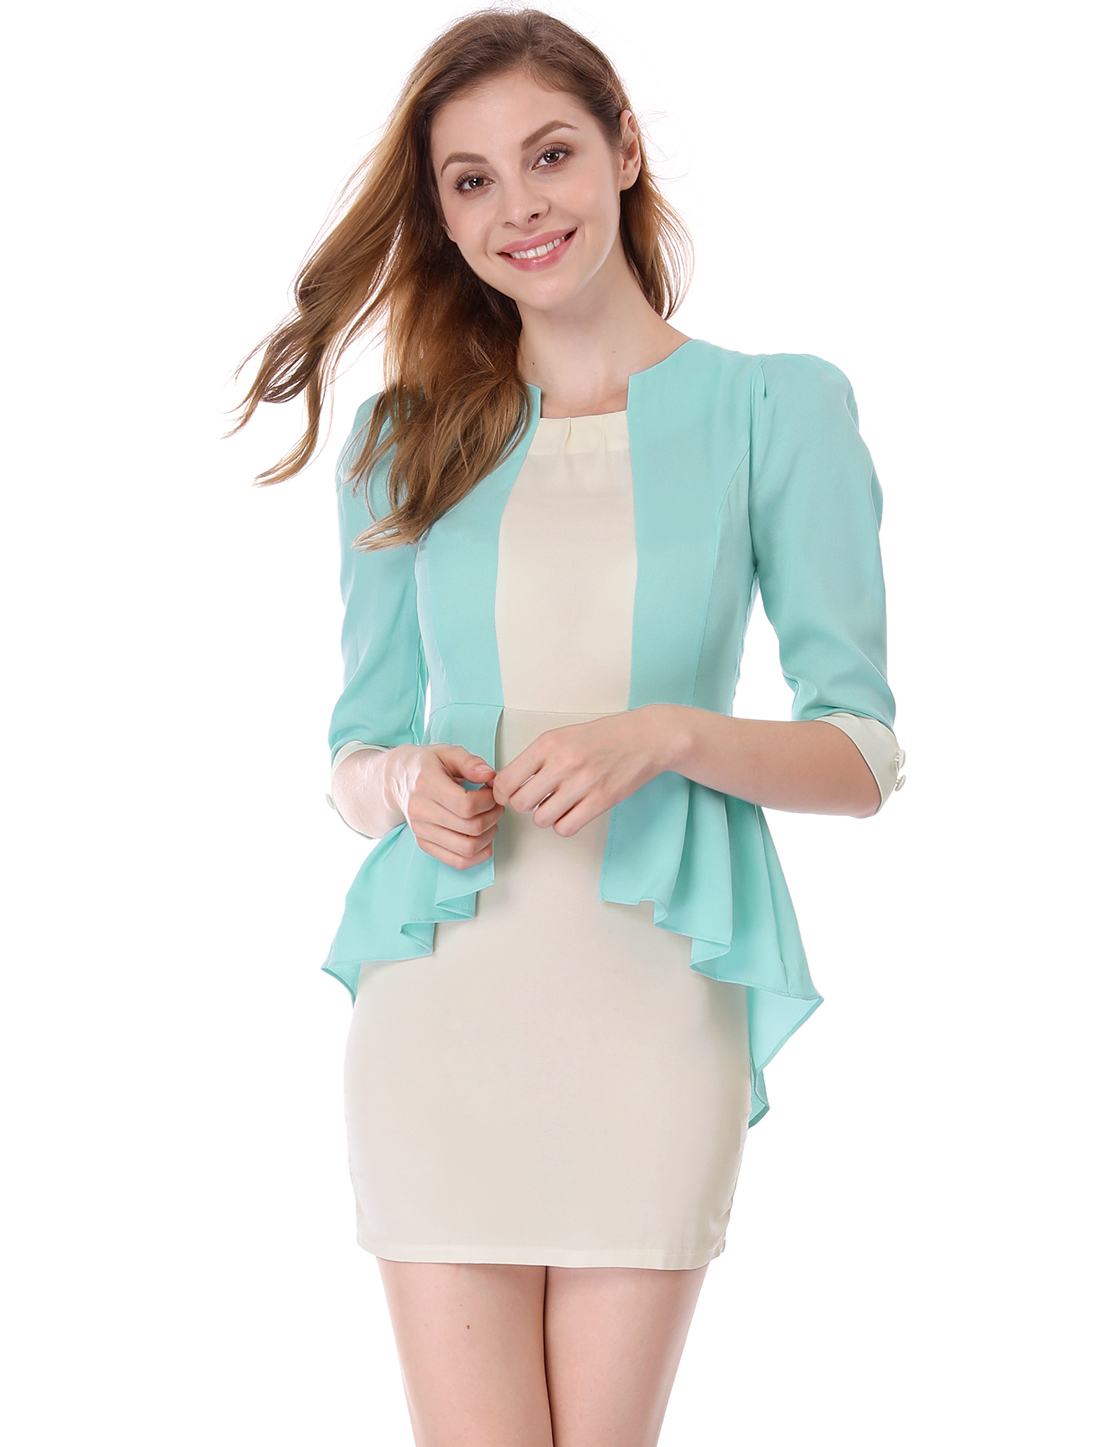 Ladies Elegant Cuffed 3/4 Sleeve Concealed Zipper Back Dress Mint XL